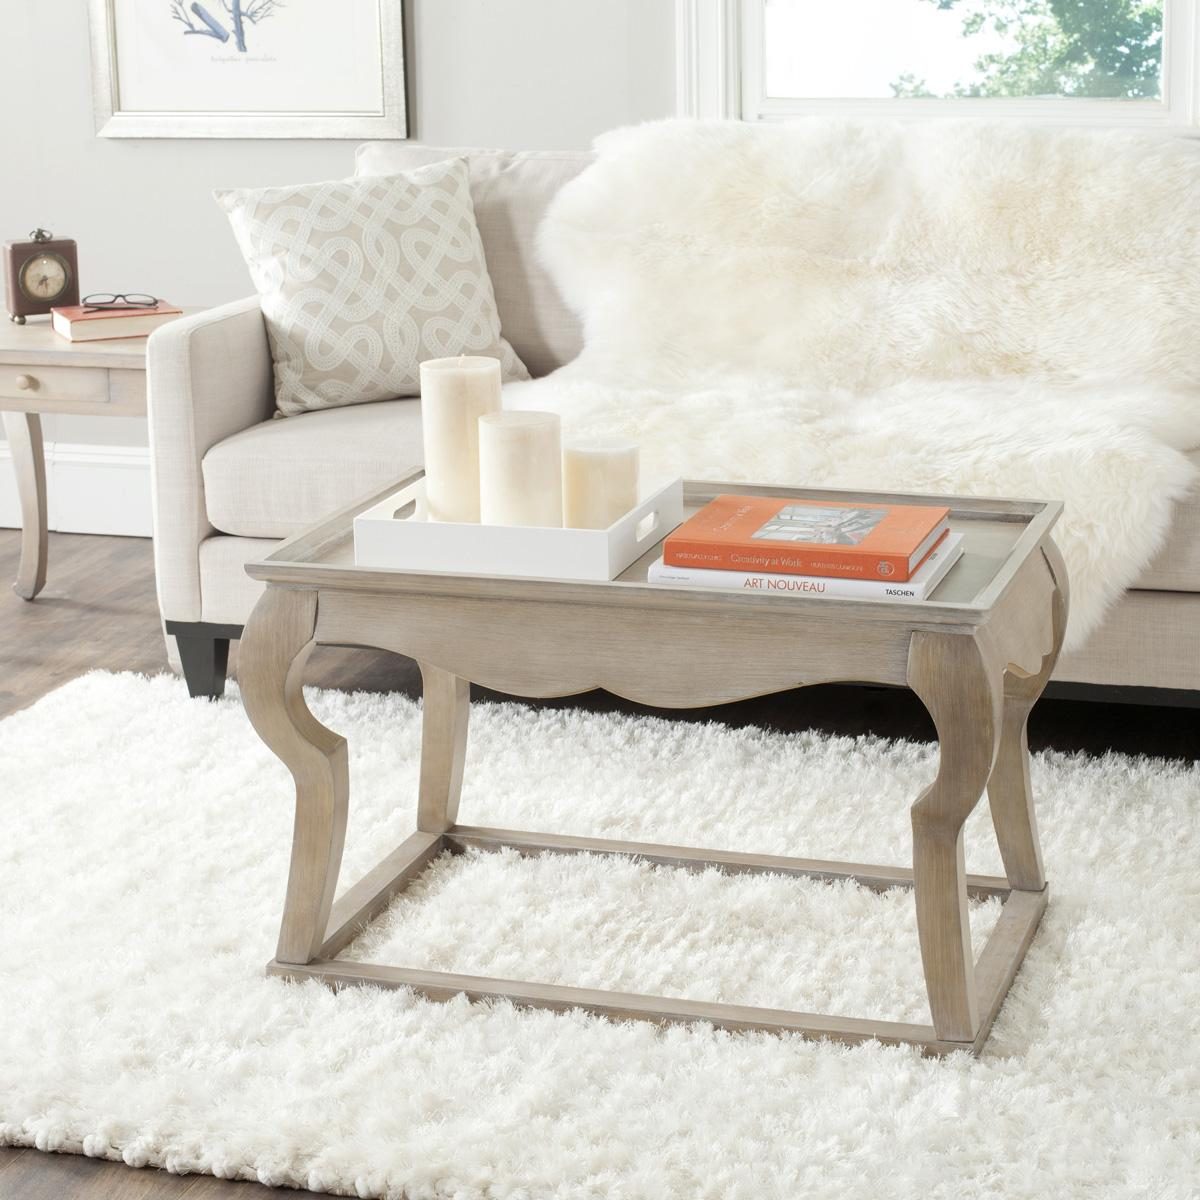 Amh1511b coffee tables furniture by safavieh inspired by vintage country swedish designs harking back to the gustavian period the eclectic preston coffee table in grey finished fir wood is a geotapseo Gallery